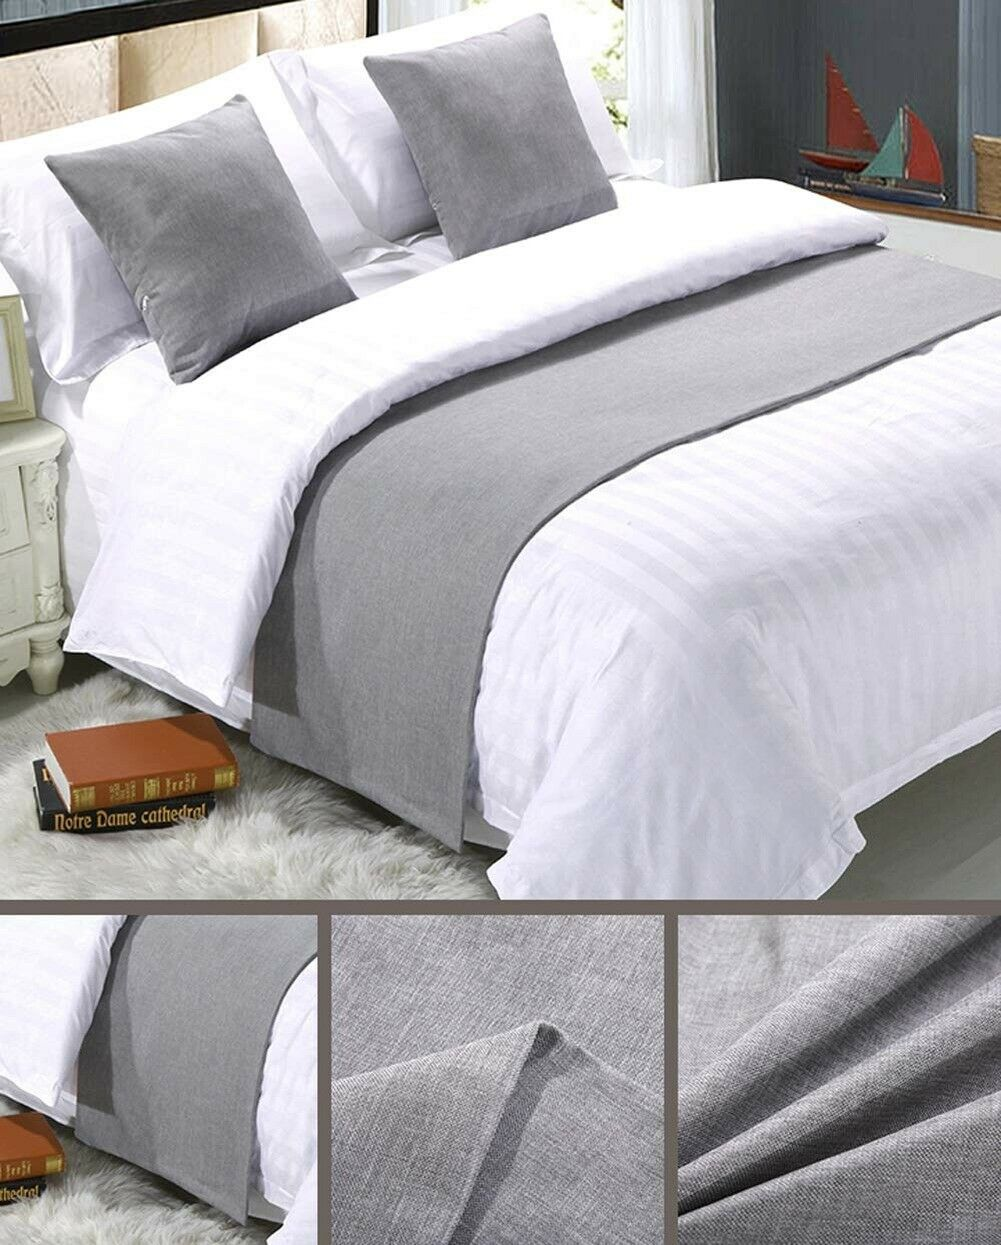 Runner Scarf Protector Sofa Bed Decorative Scarf for Bedroom